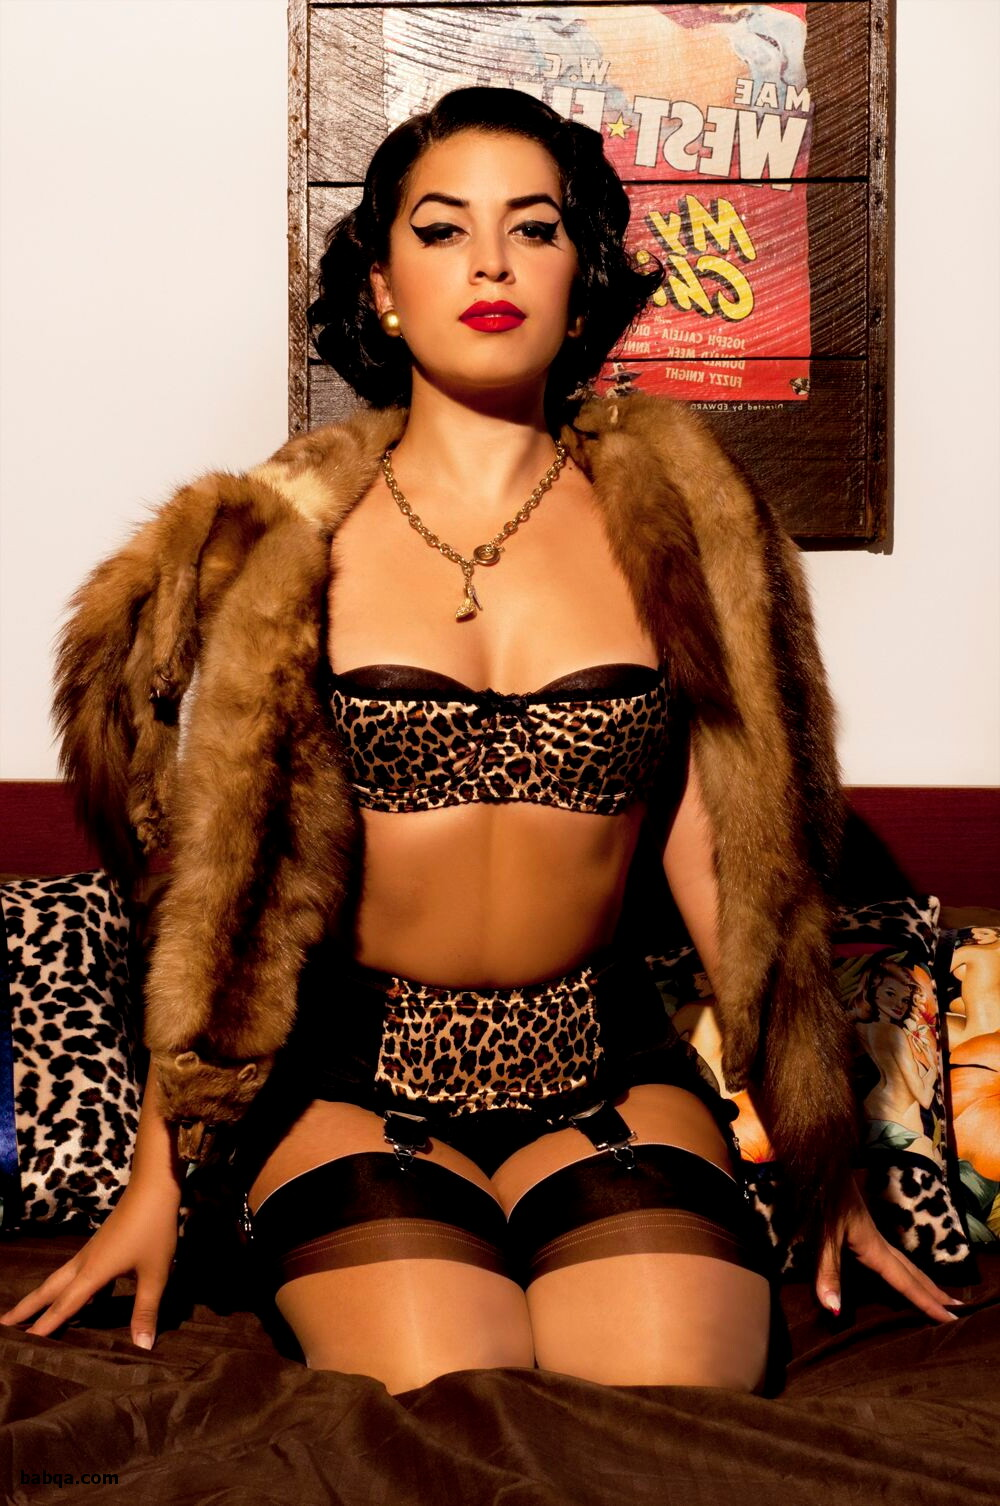 dominatrix lingerie and sexy girl in stockings